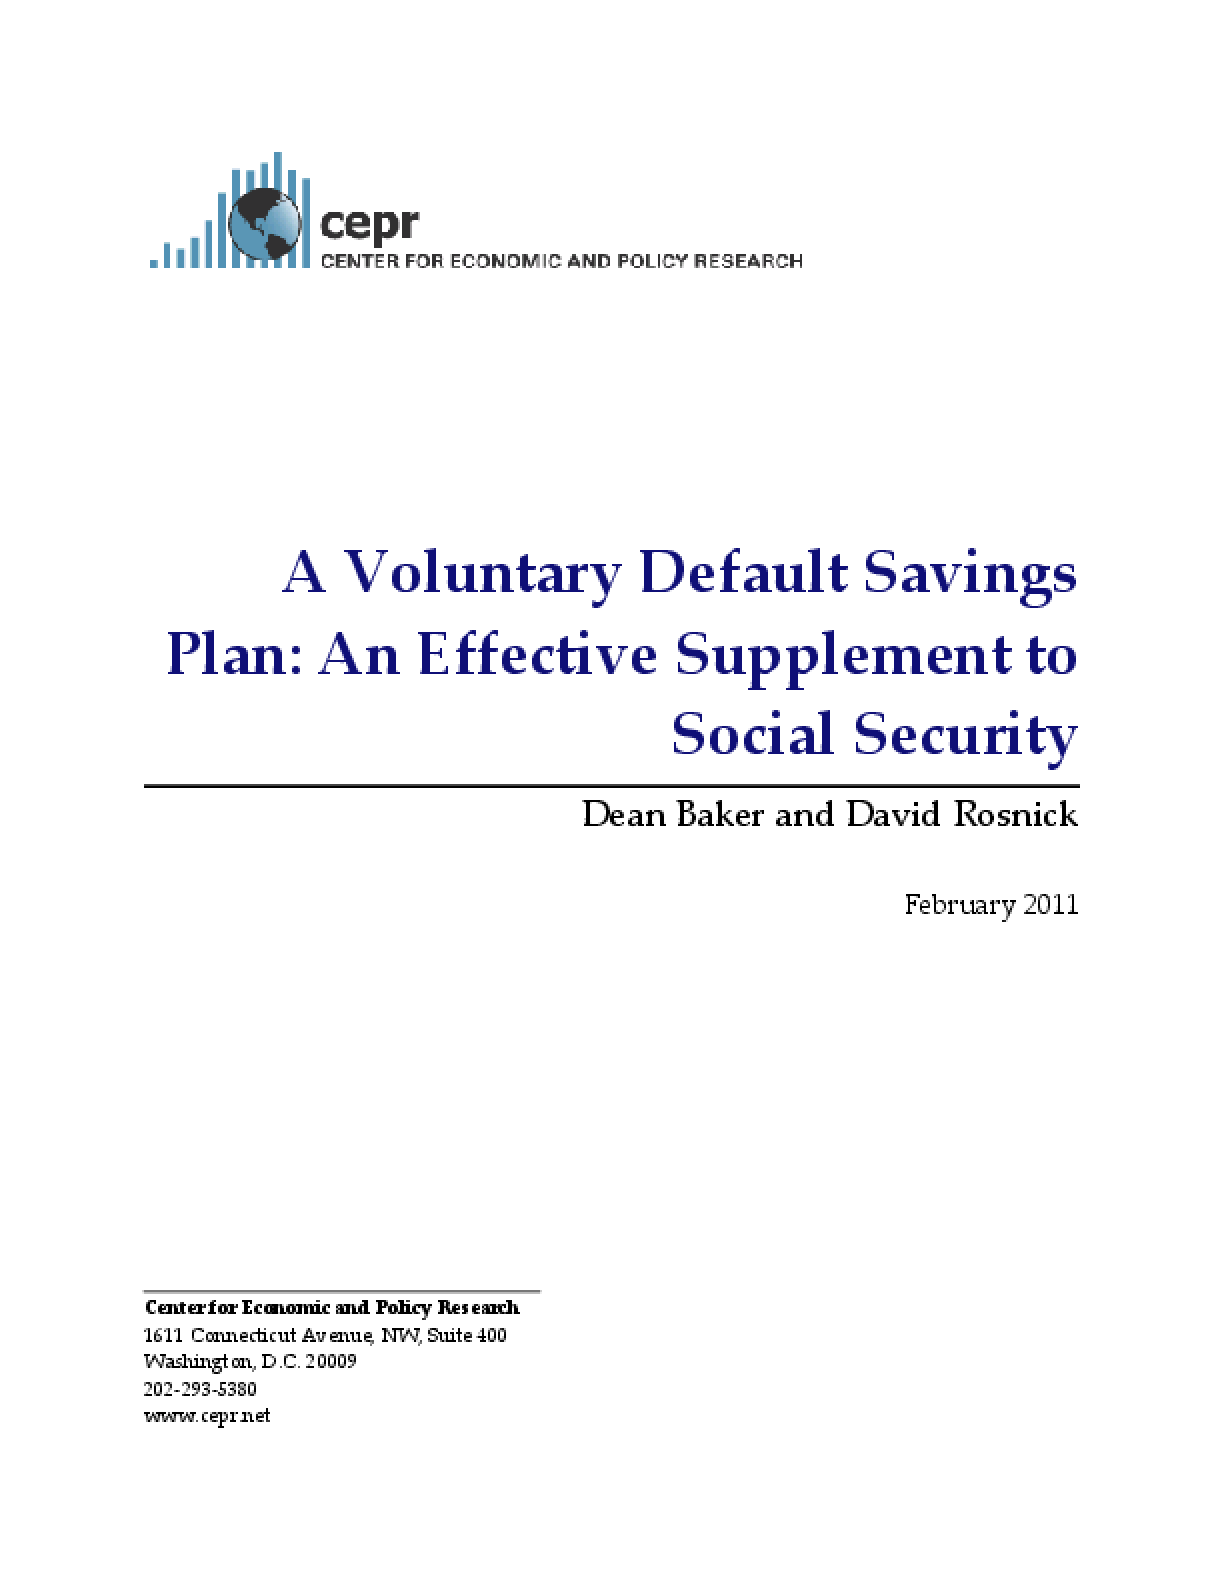 A Voluntary Default Savings Plan: An Effective Supplement to Social Security